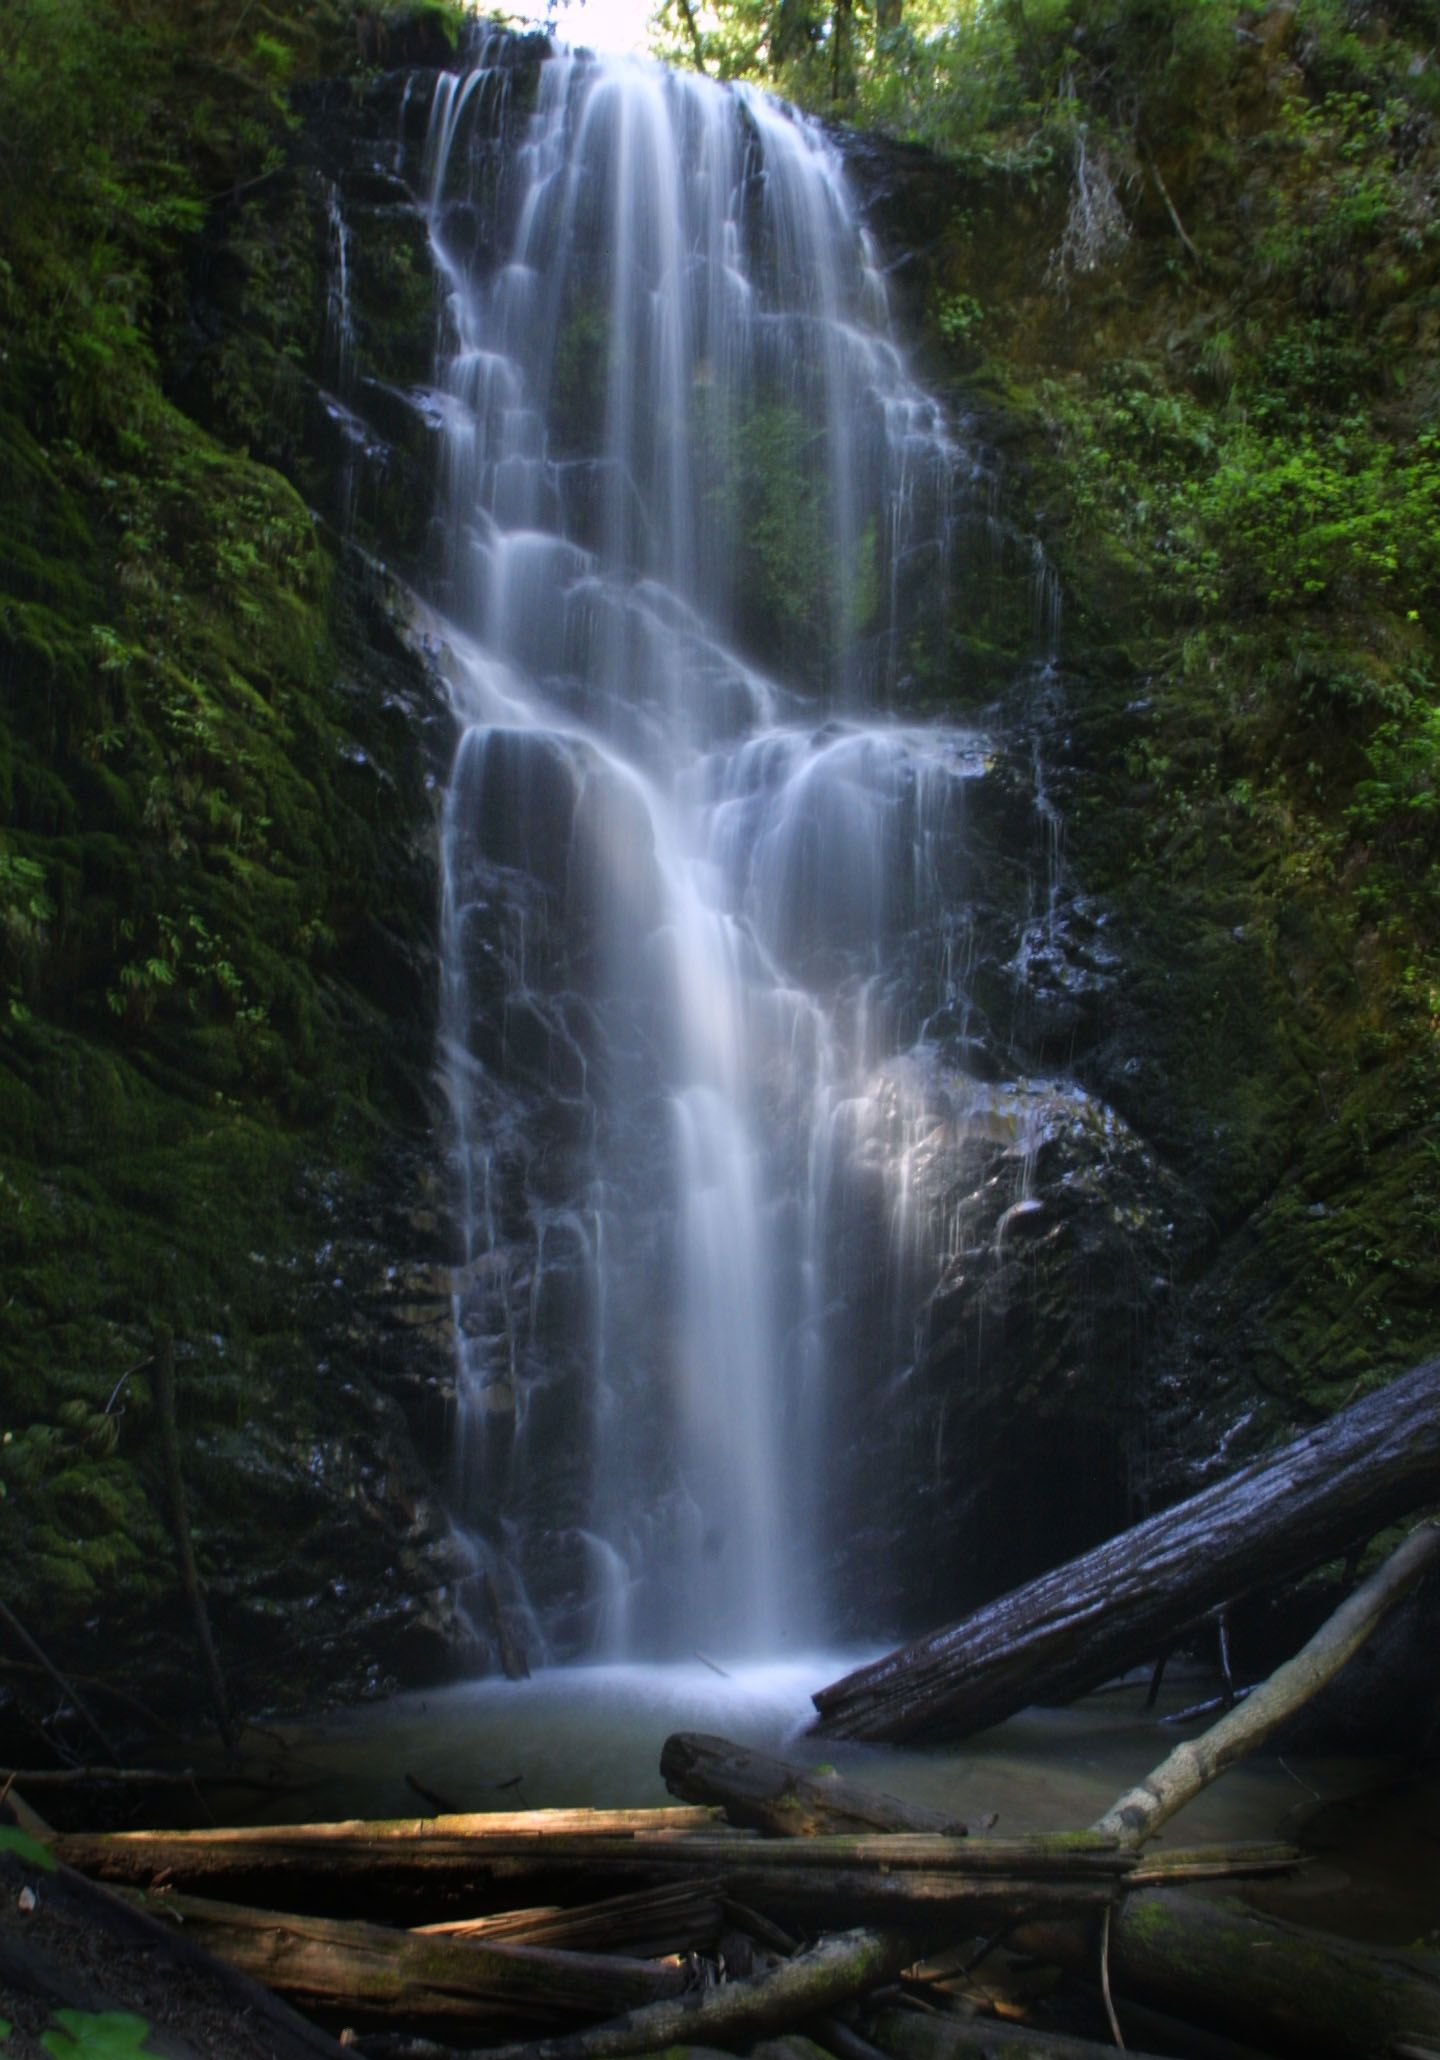 No On The List Of The Top Things To Do In Santa Cruz County - 10 waterfalls to see before you die